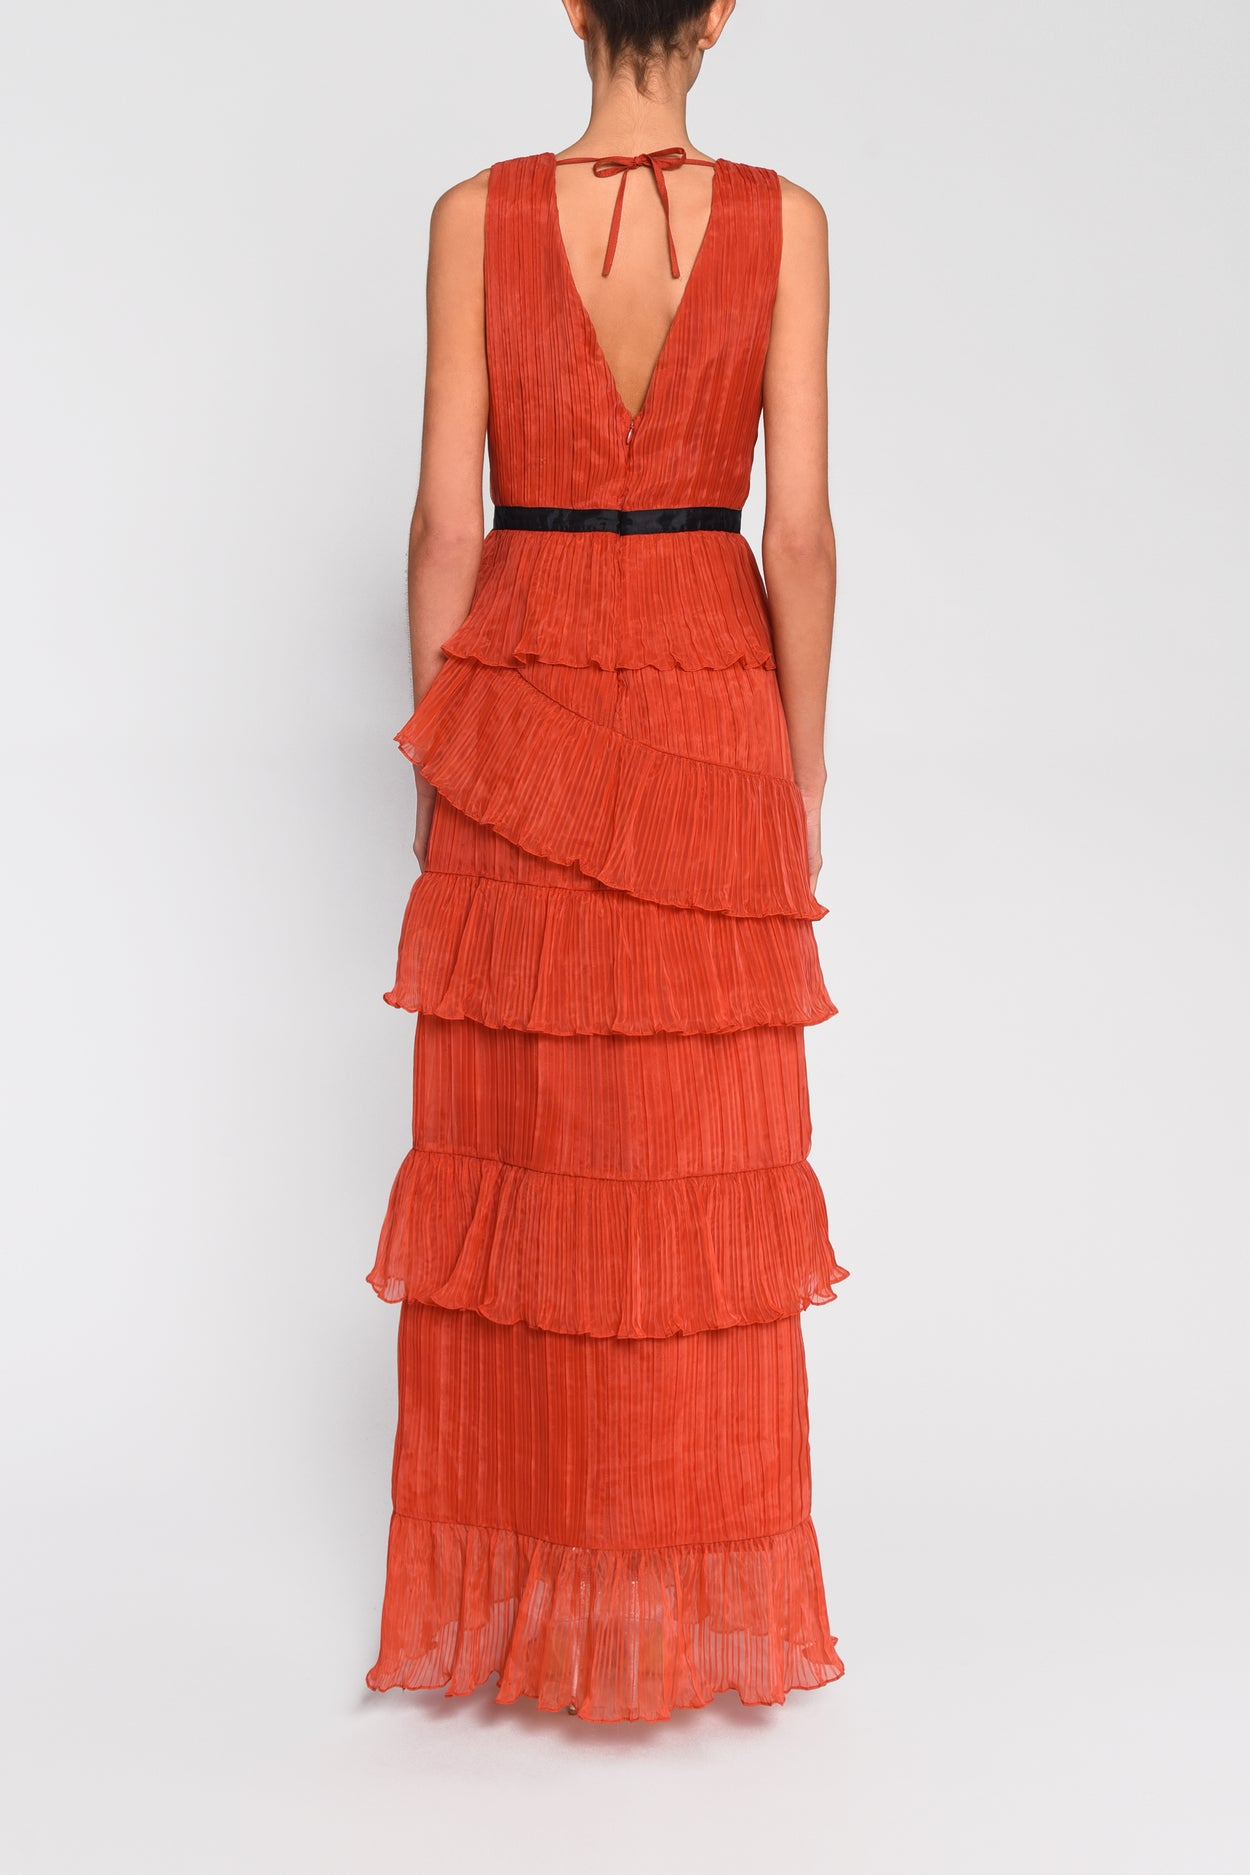 True Decadence Orange Plunge Front Tulle Layered Maxi Dress